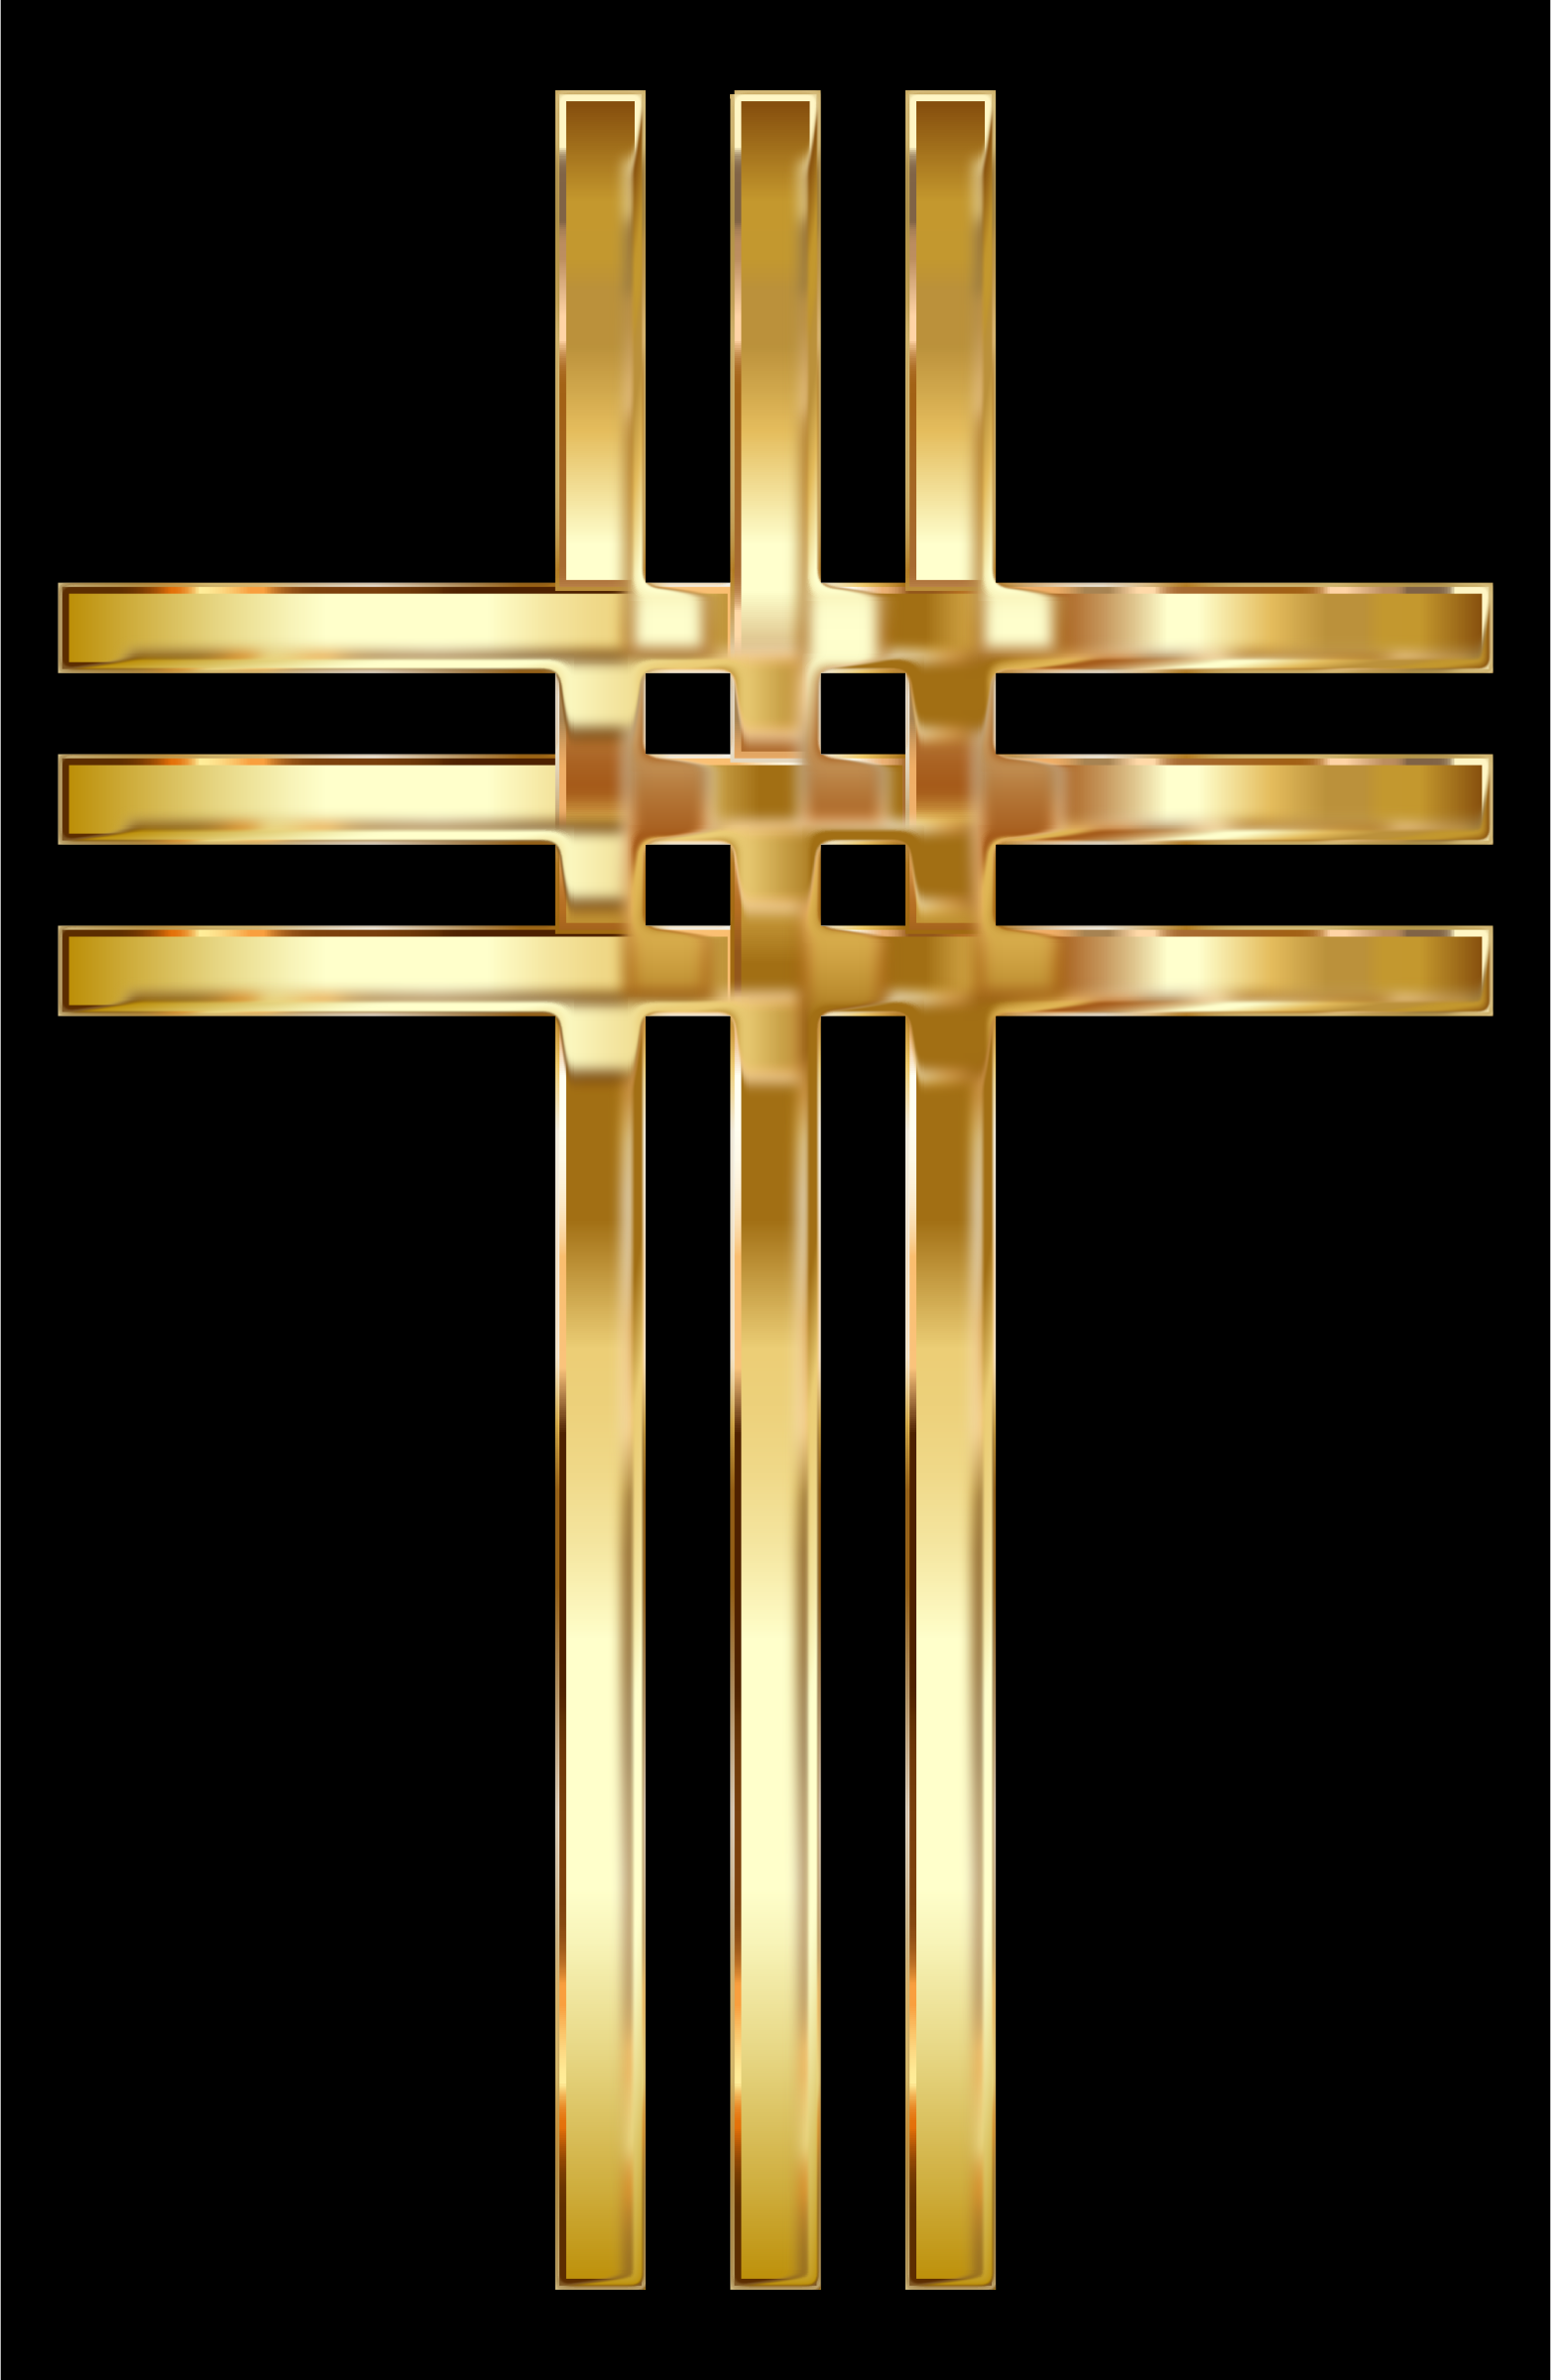 Interlocked Stylized Golden Cross Enhanced by GDJ